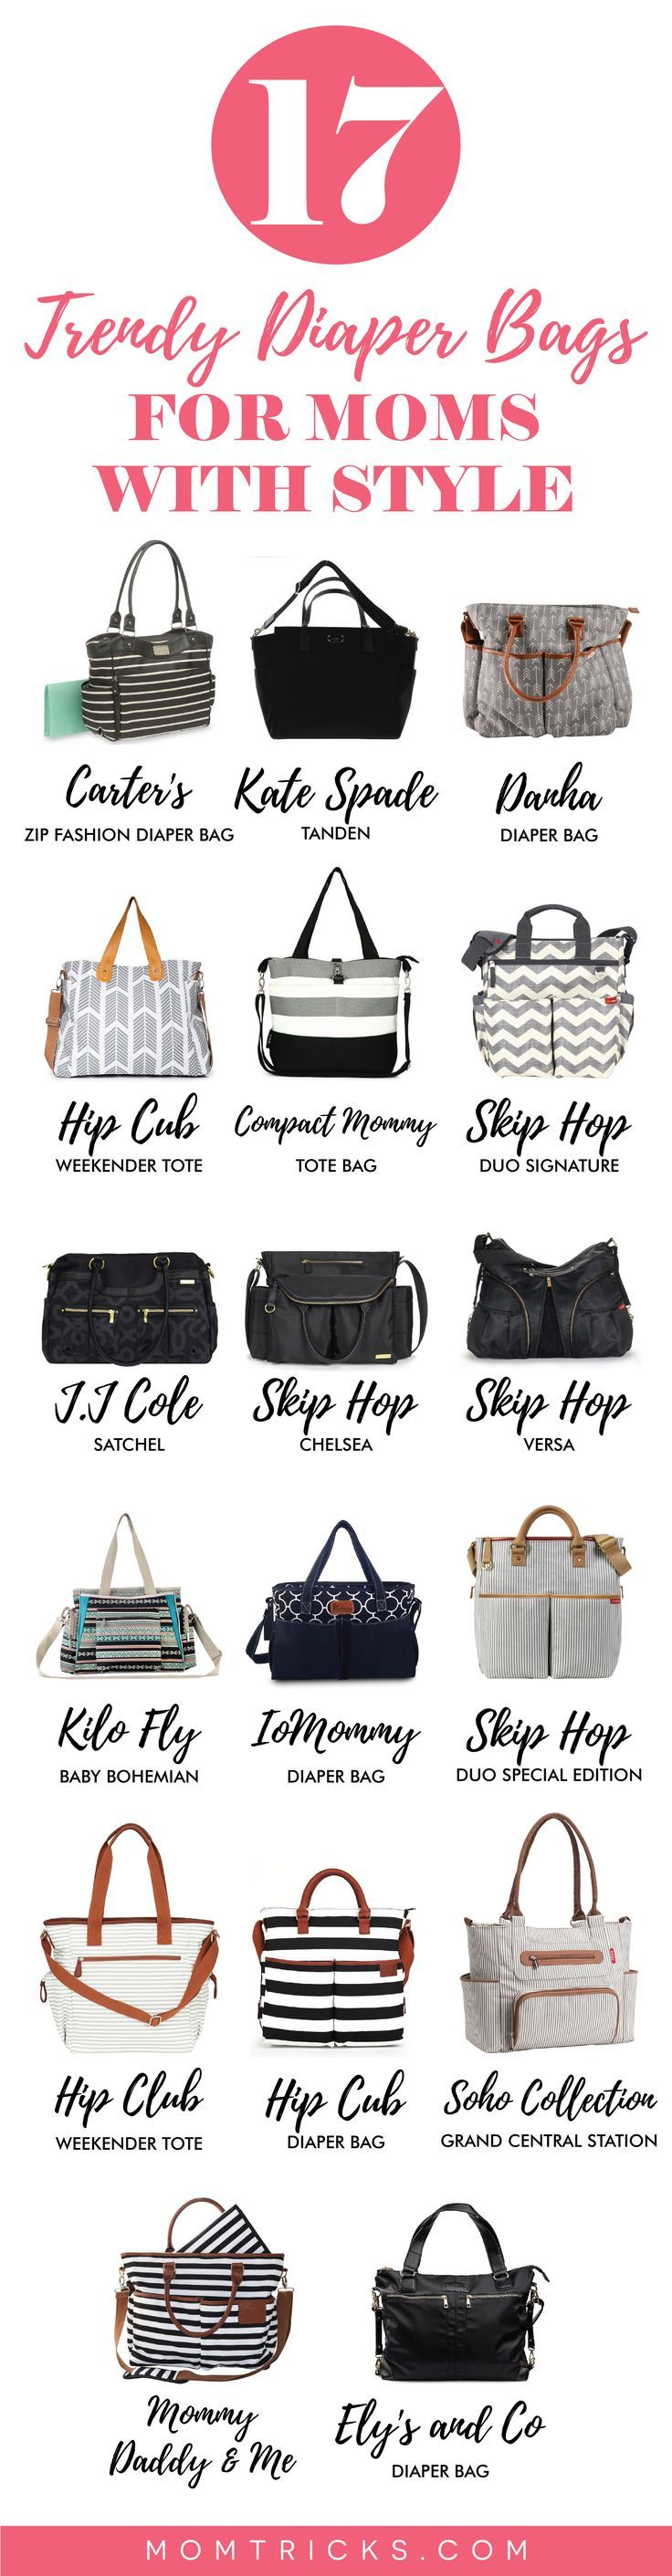 17 of the very best diaper bags that you'll love to carry.